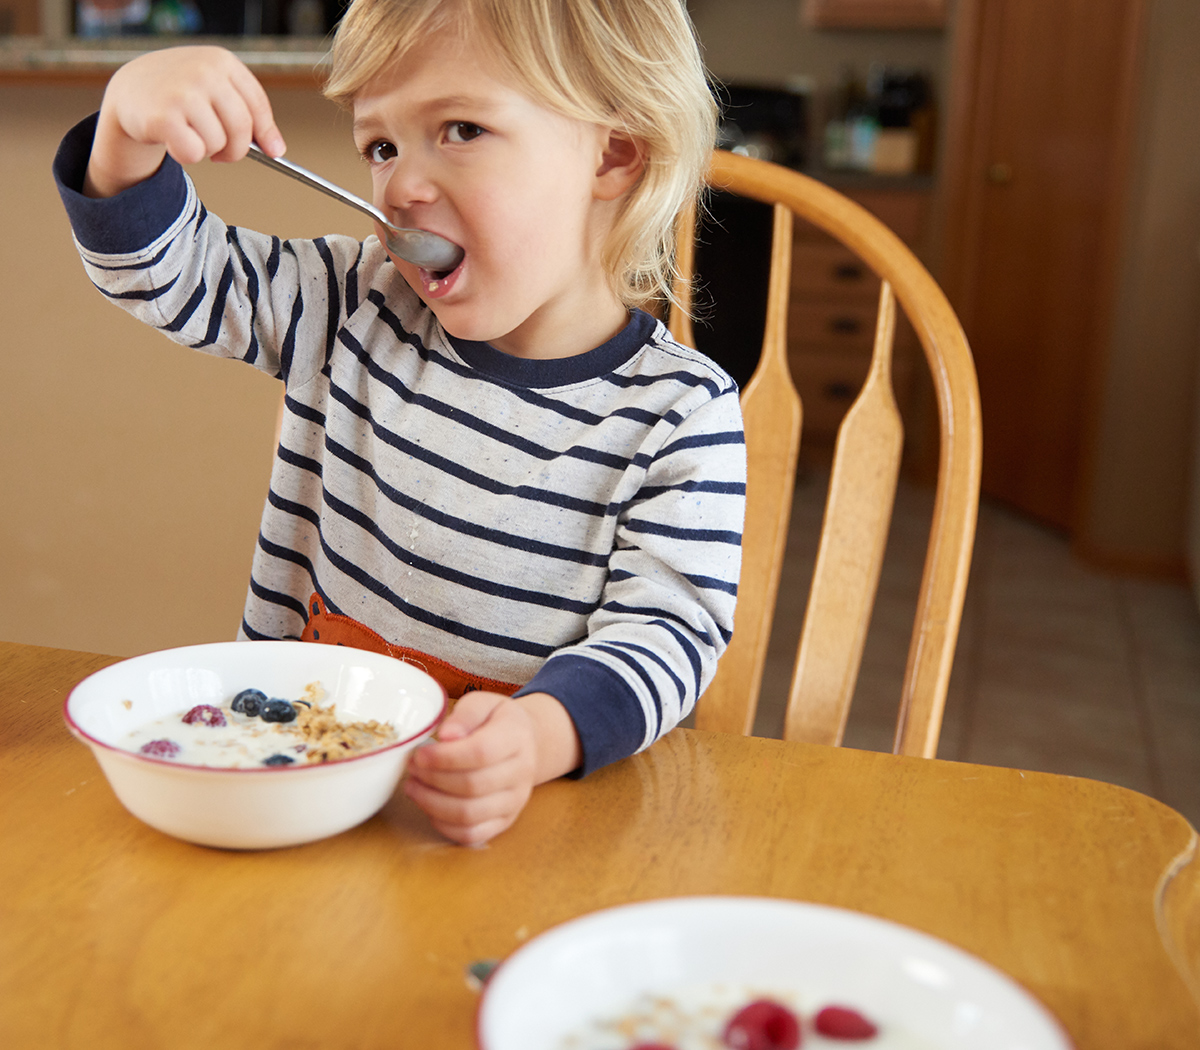 A little boy eats a bowl of cereal topped with fresh berries.